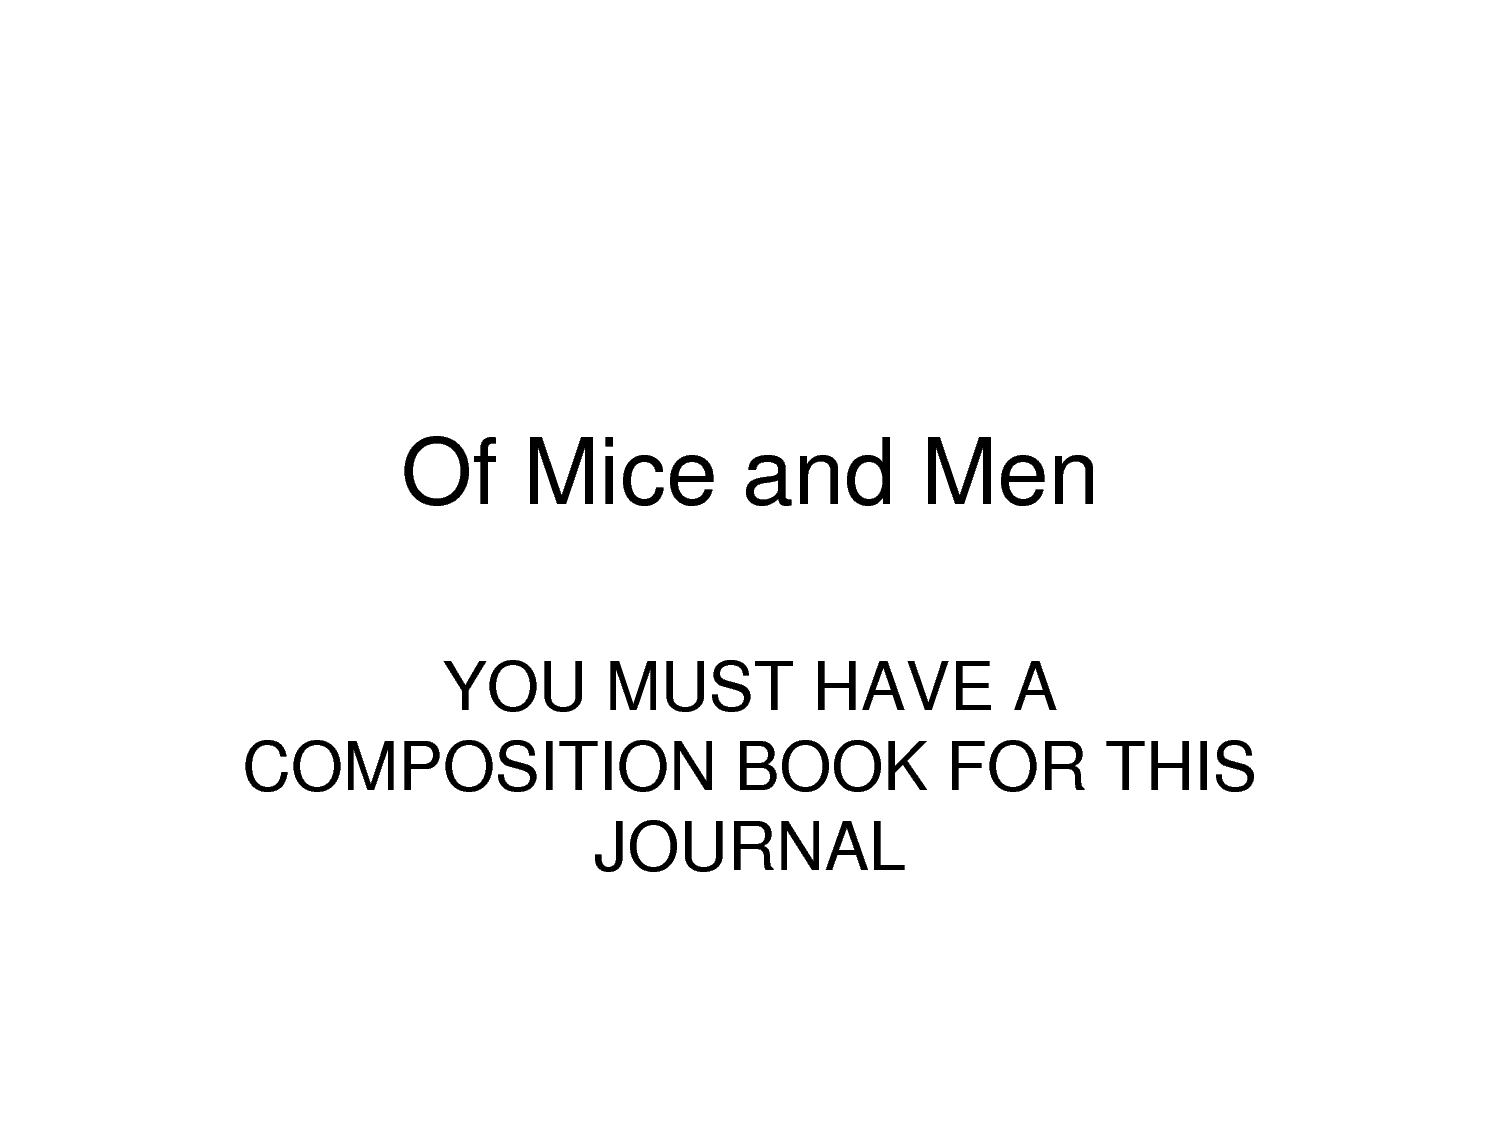 Quotes for of mice and men